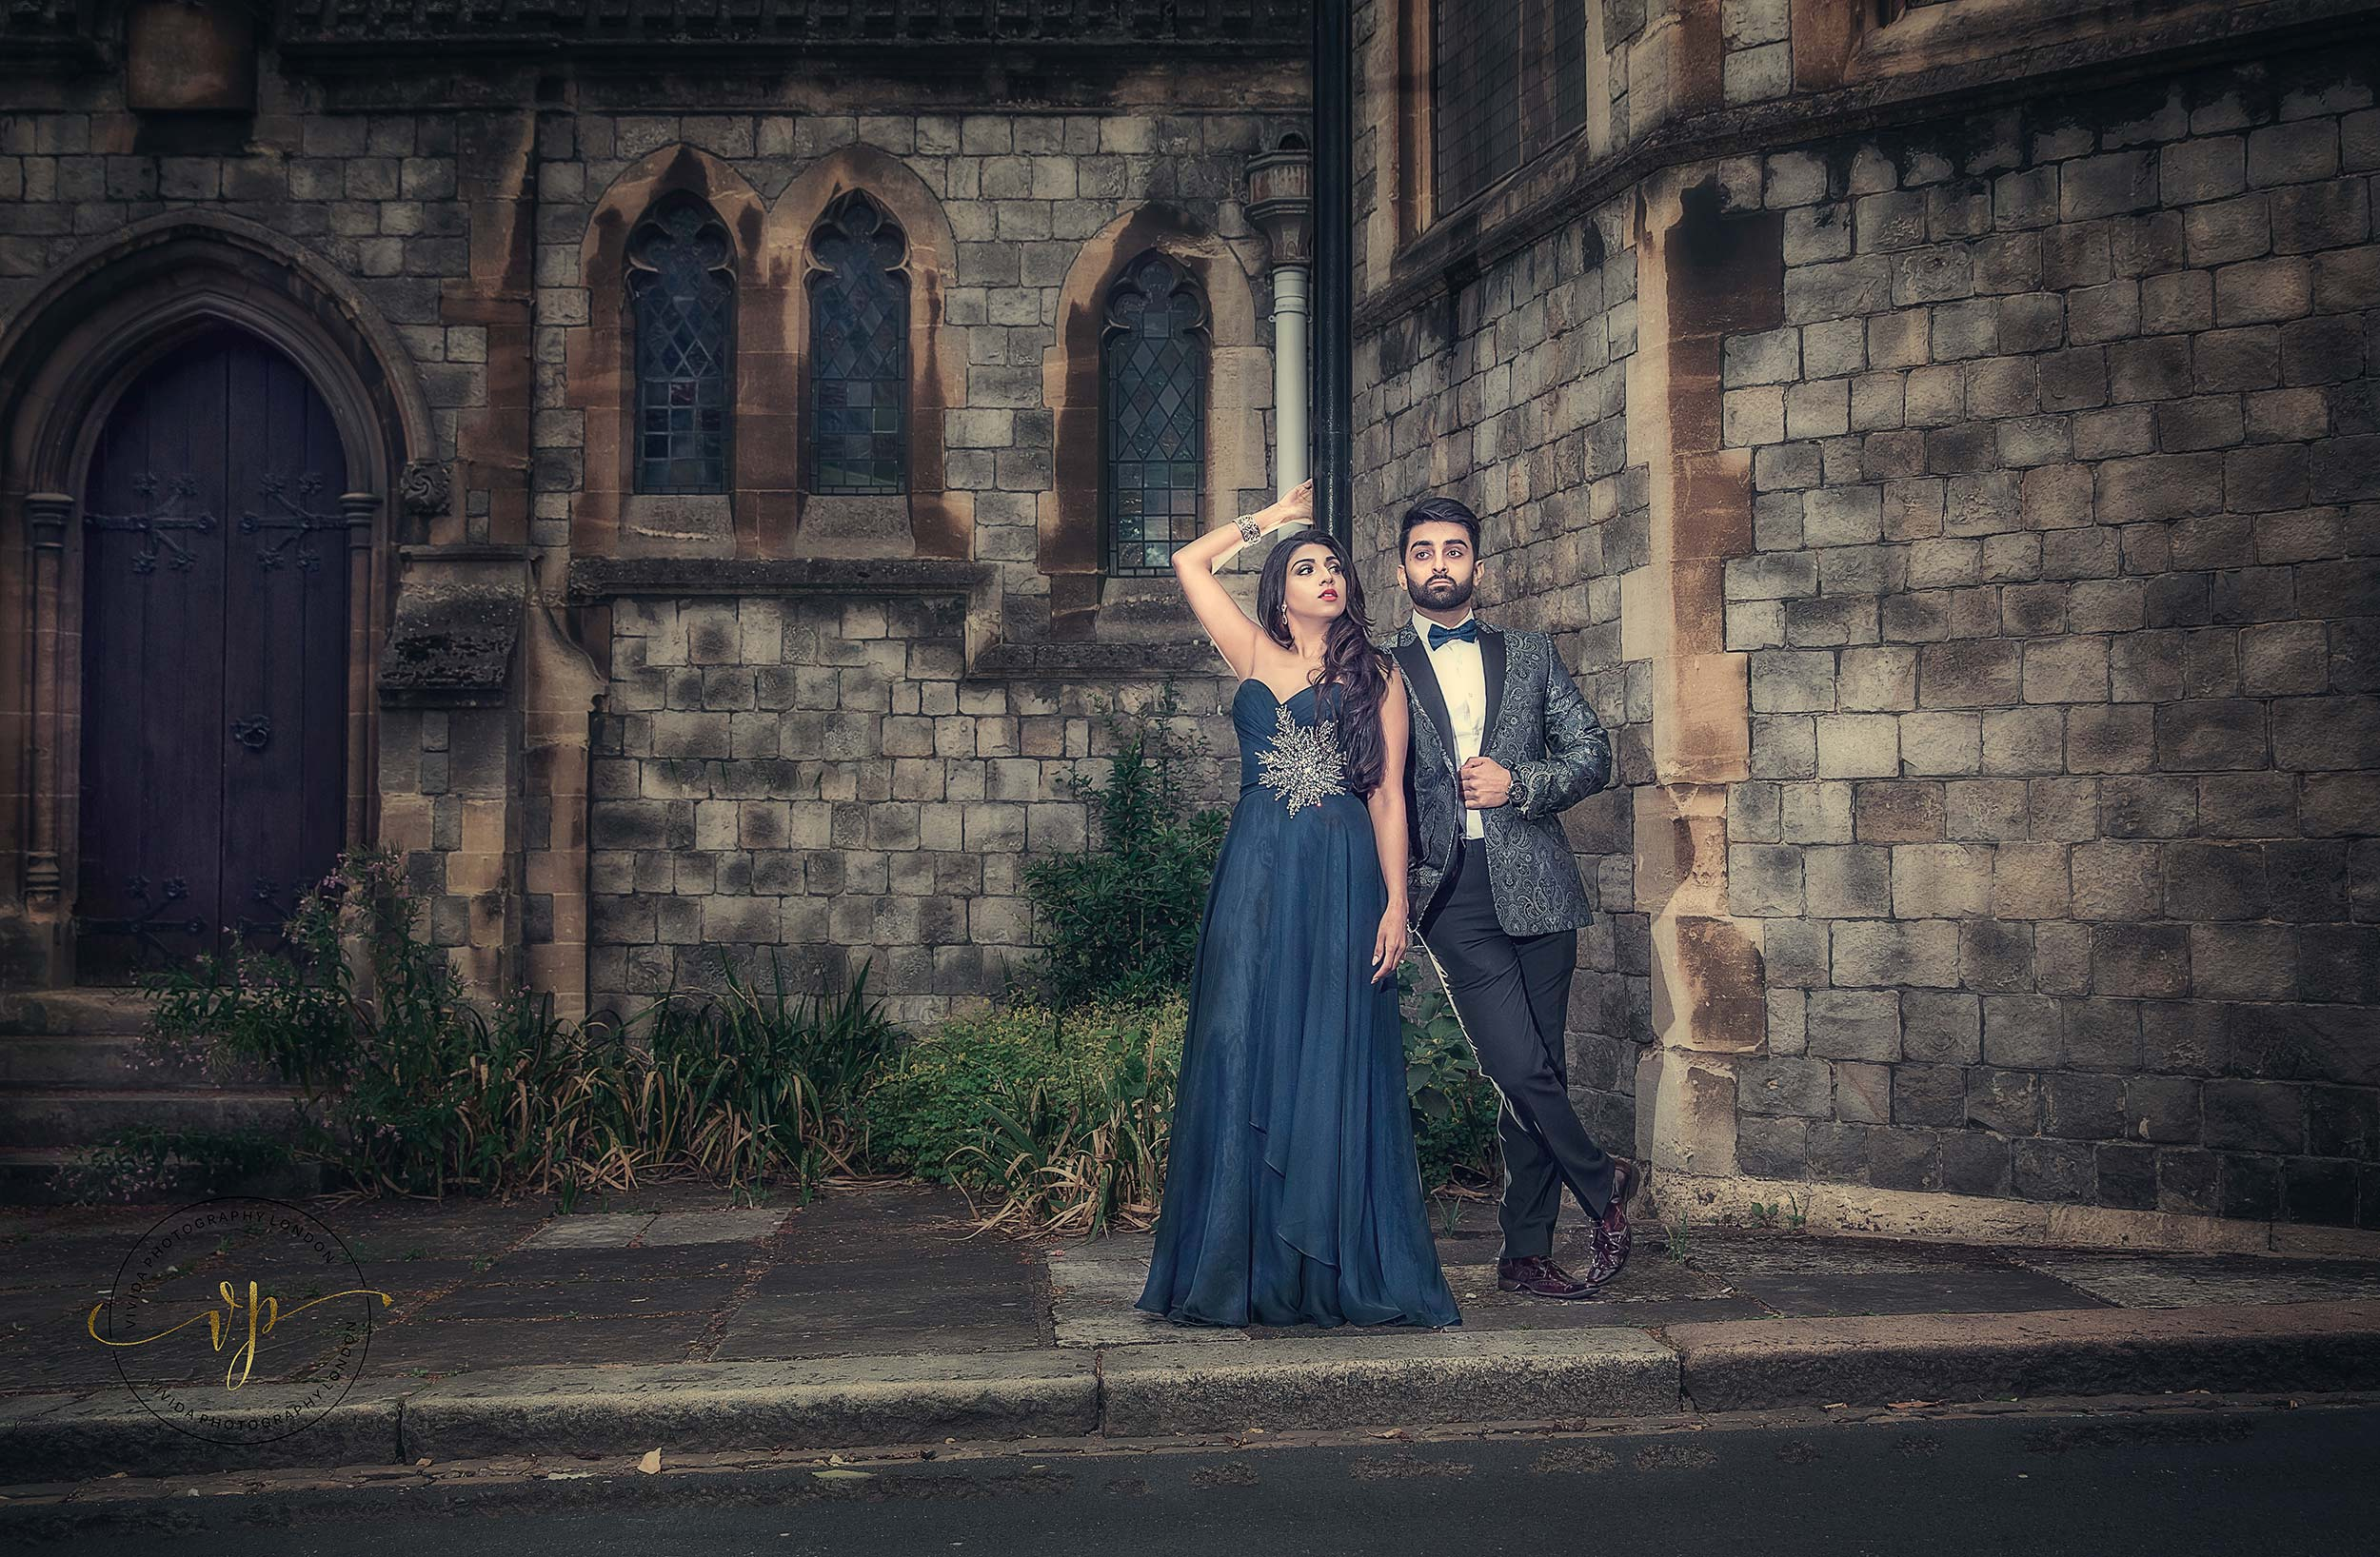 pre+wedding+photography+london+81.jpg